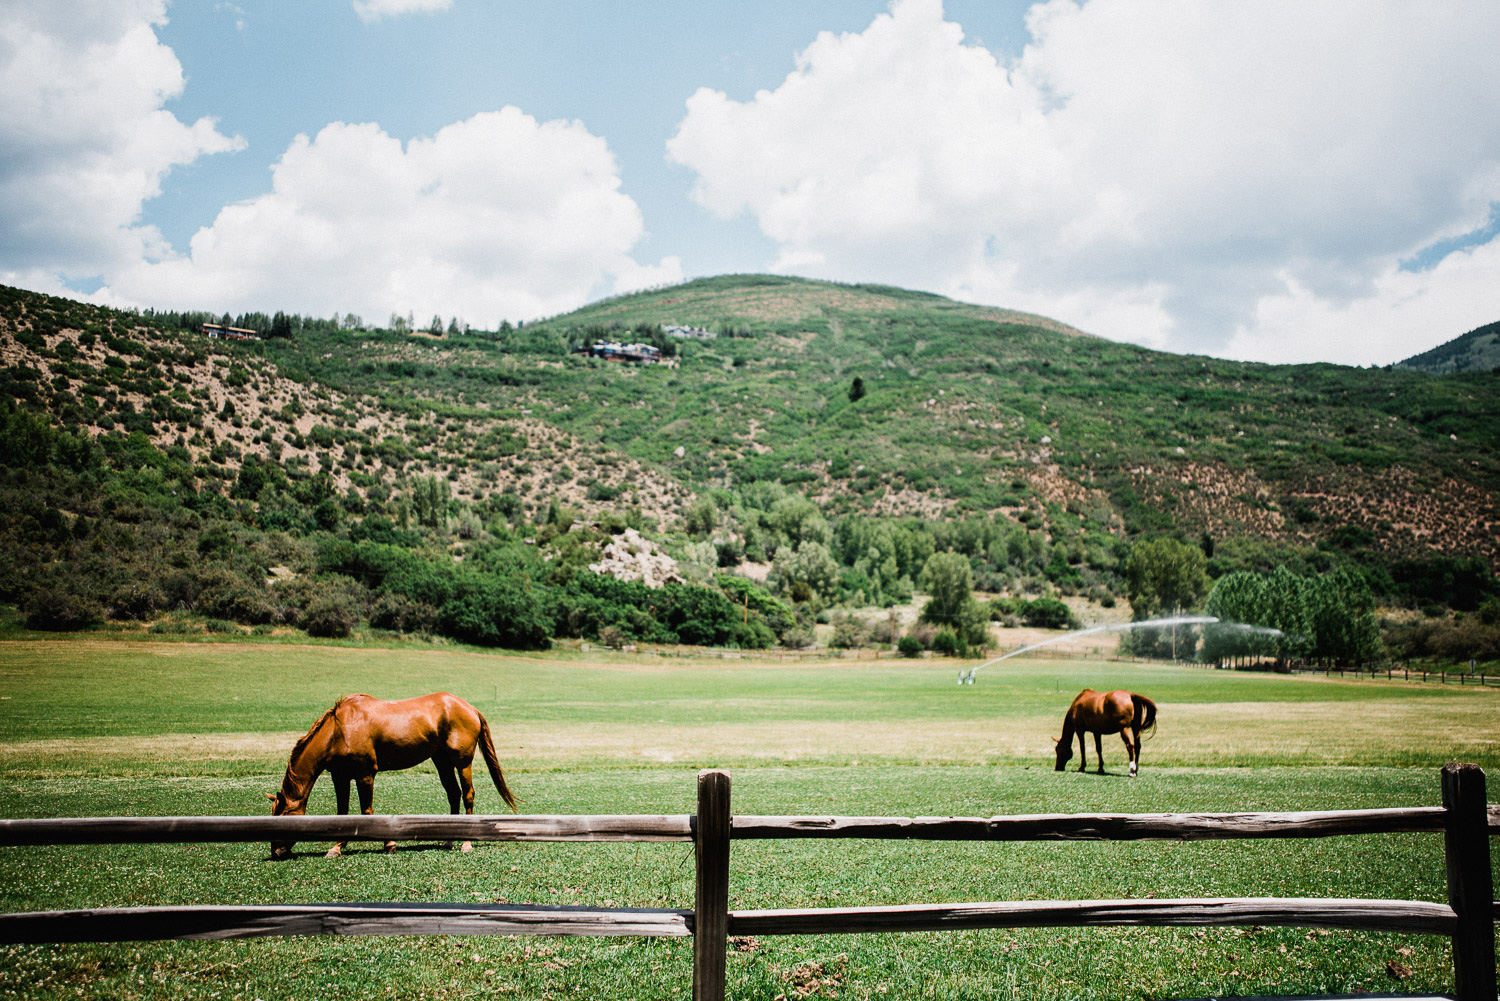 Horses graze on a ranch in Aspen, Colorado